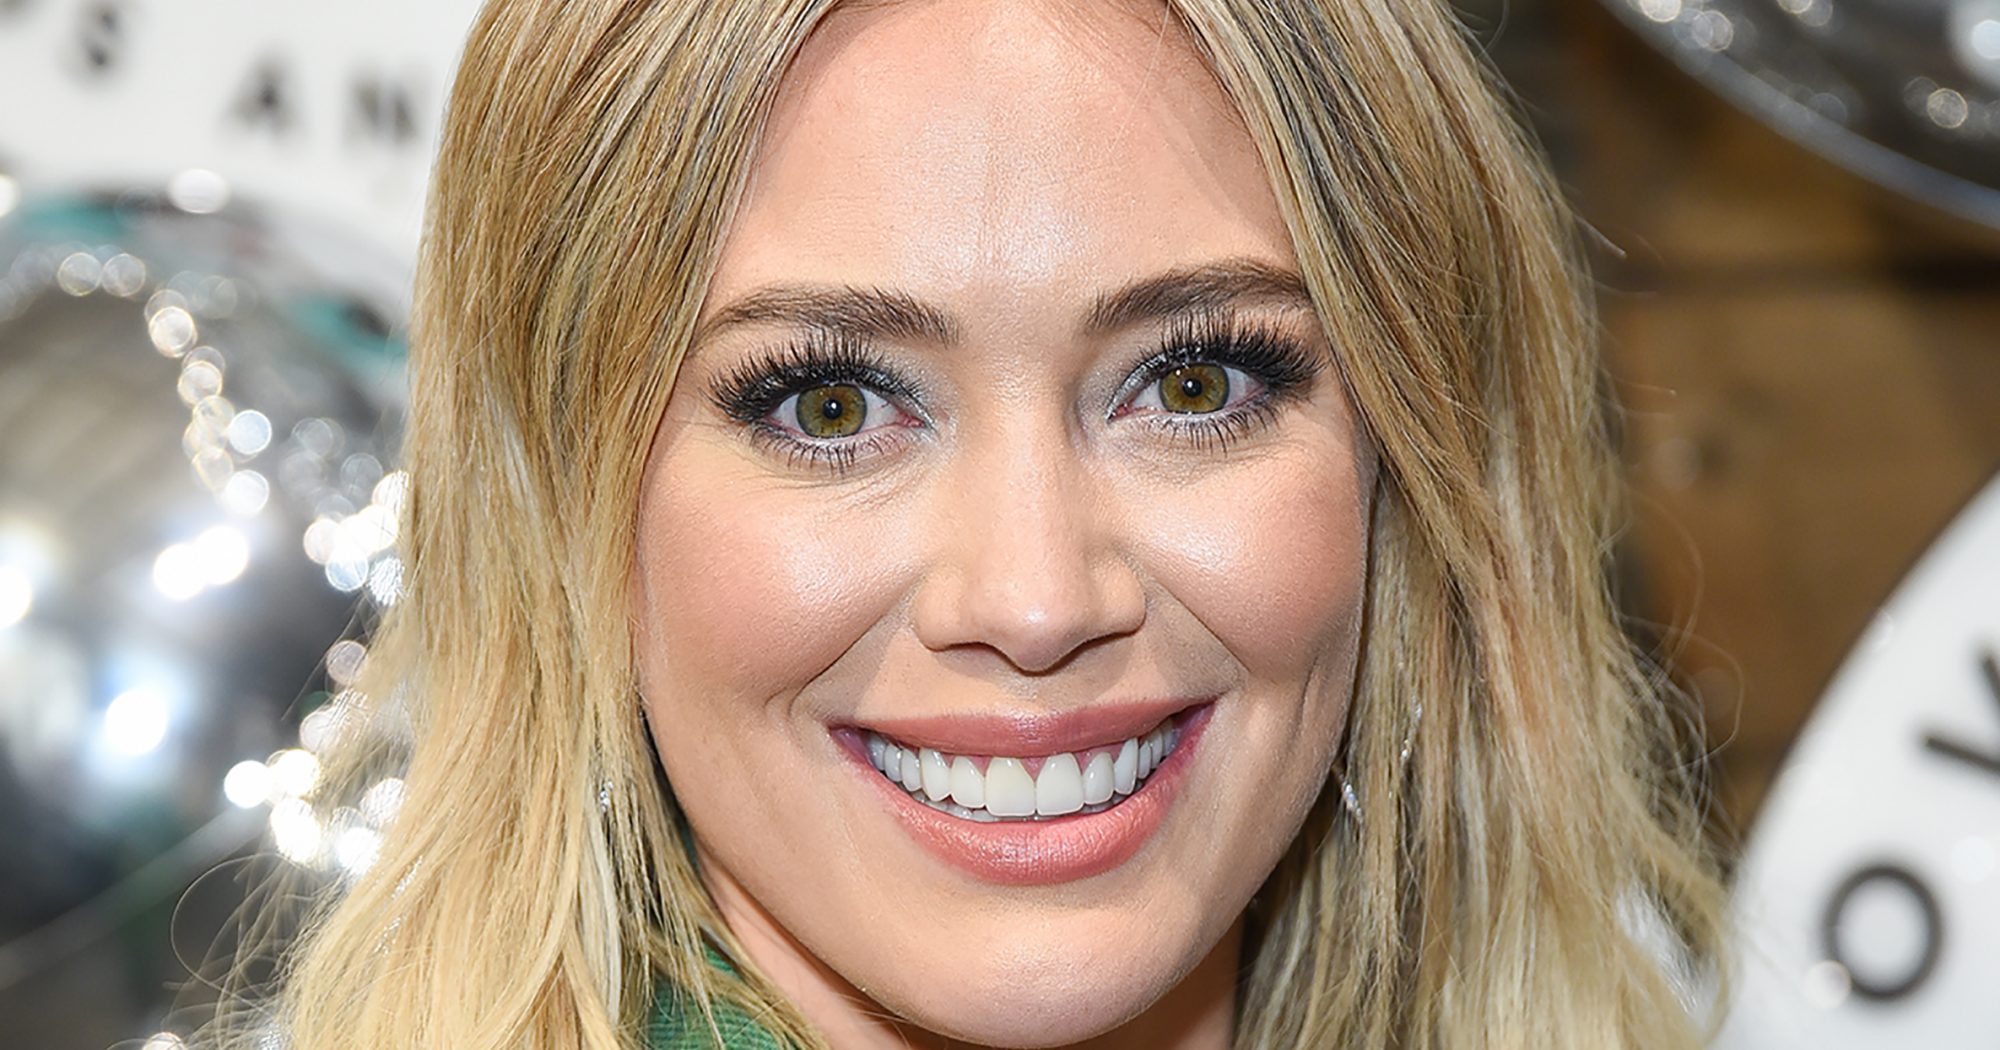 Hilary Duff attends Love Leo Rescue's 2nd Annual Cocktails for a Cause at Rolling Greens Los Angeles